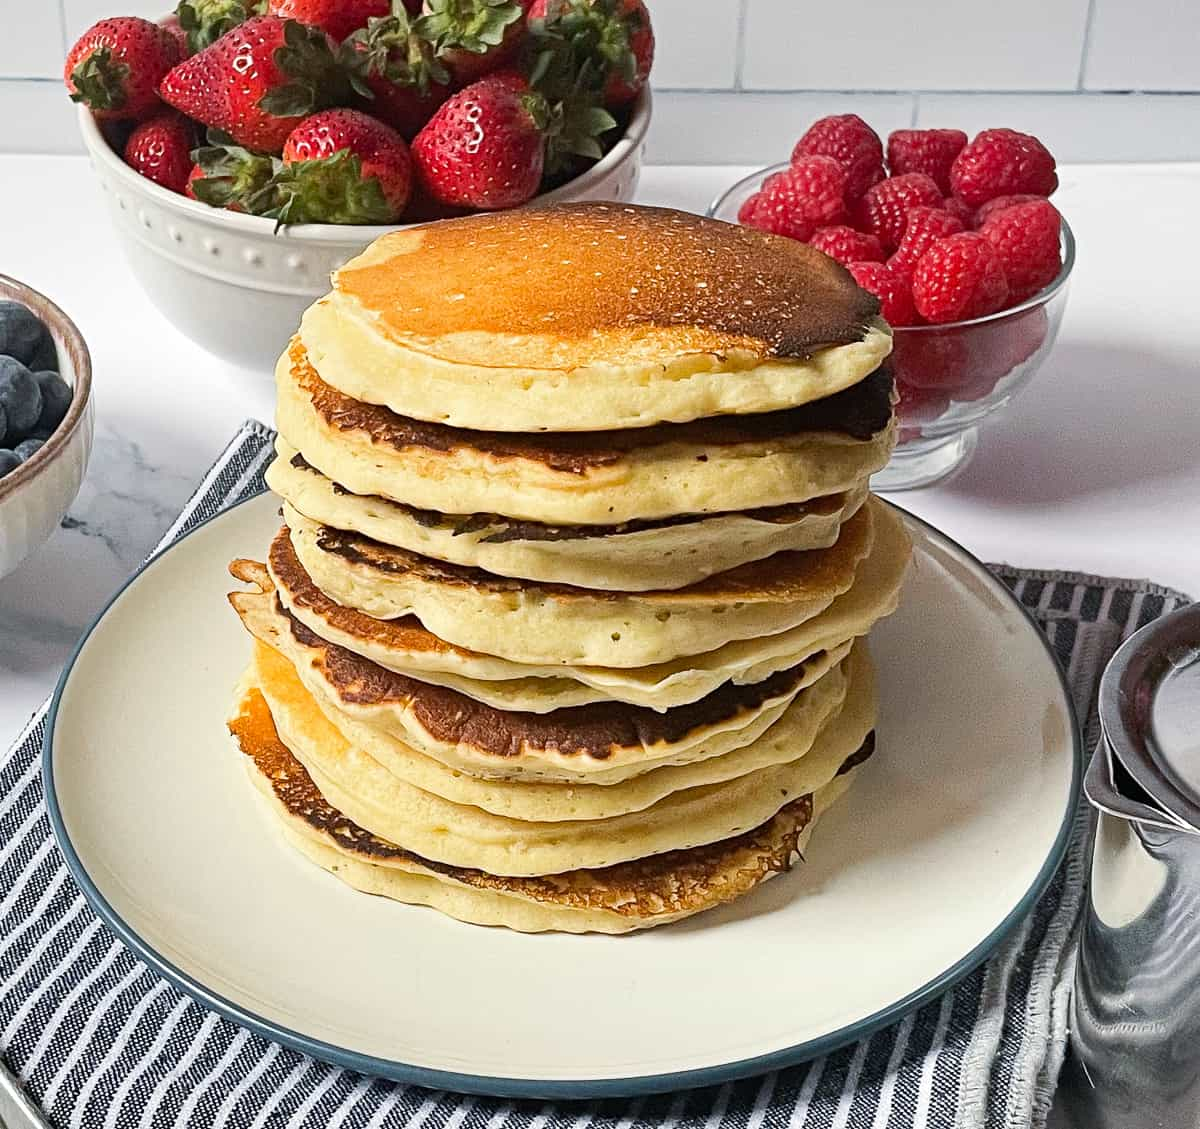 oat milk pancakes in a stack on a white plate surrounded by berries